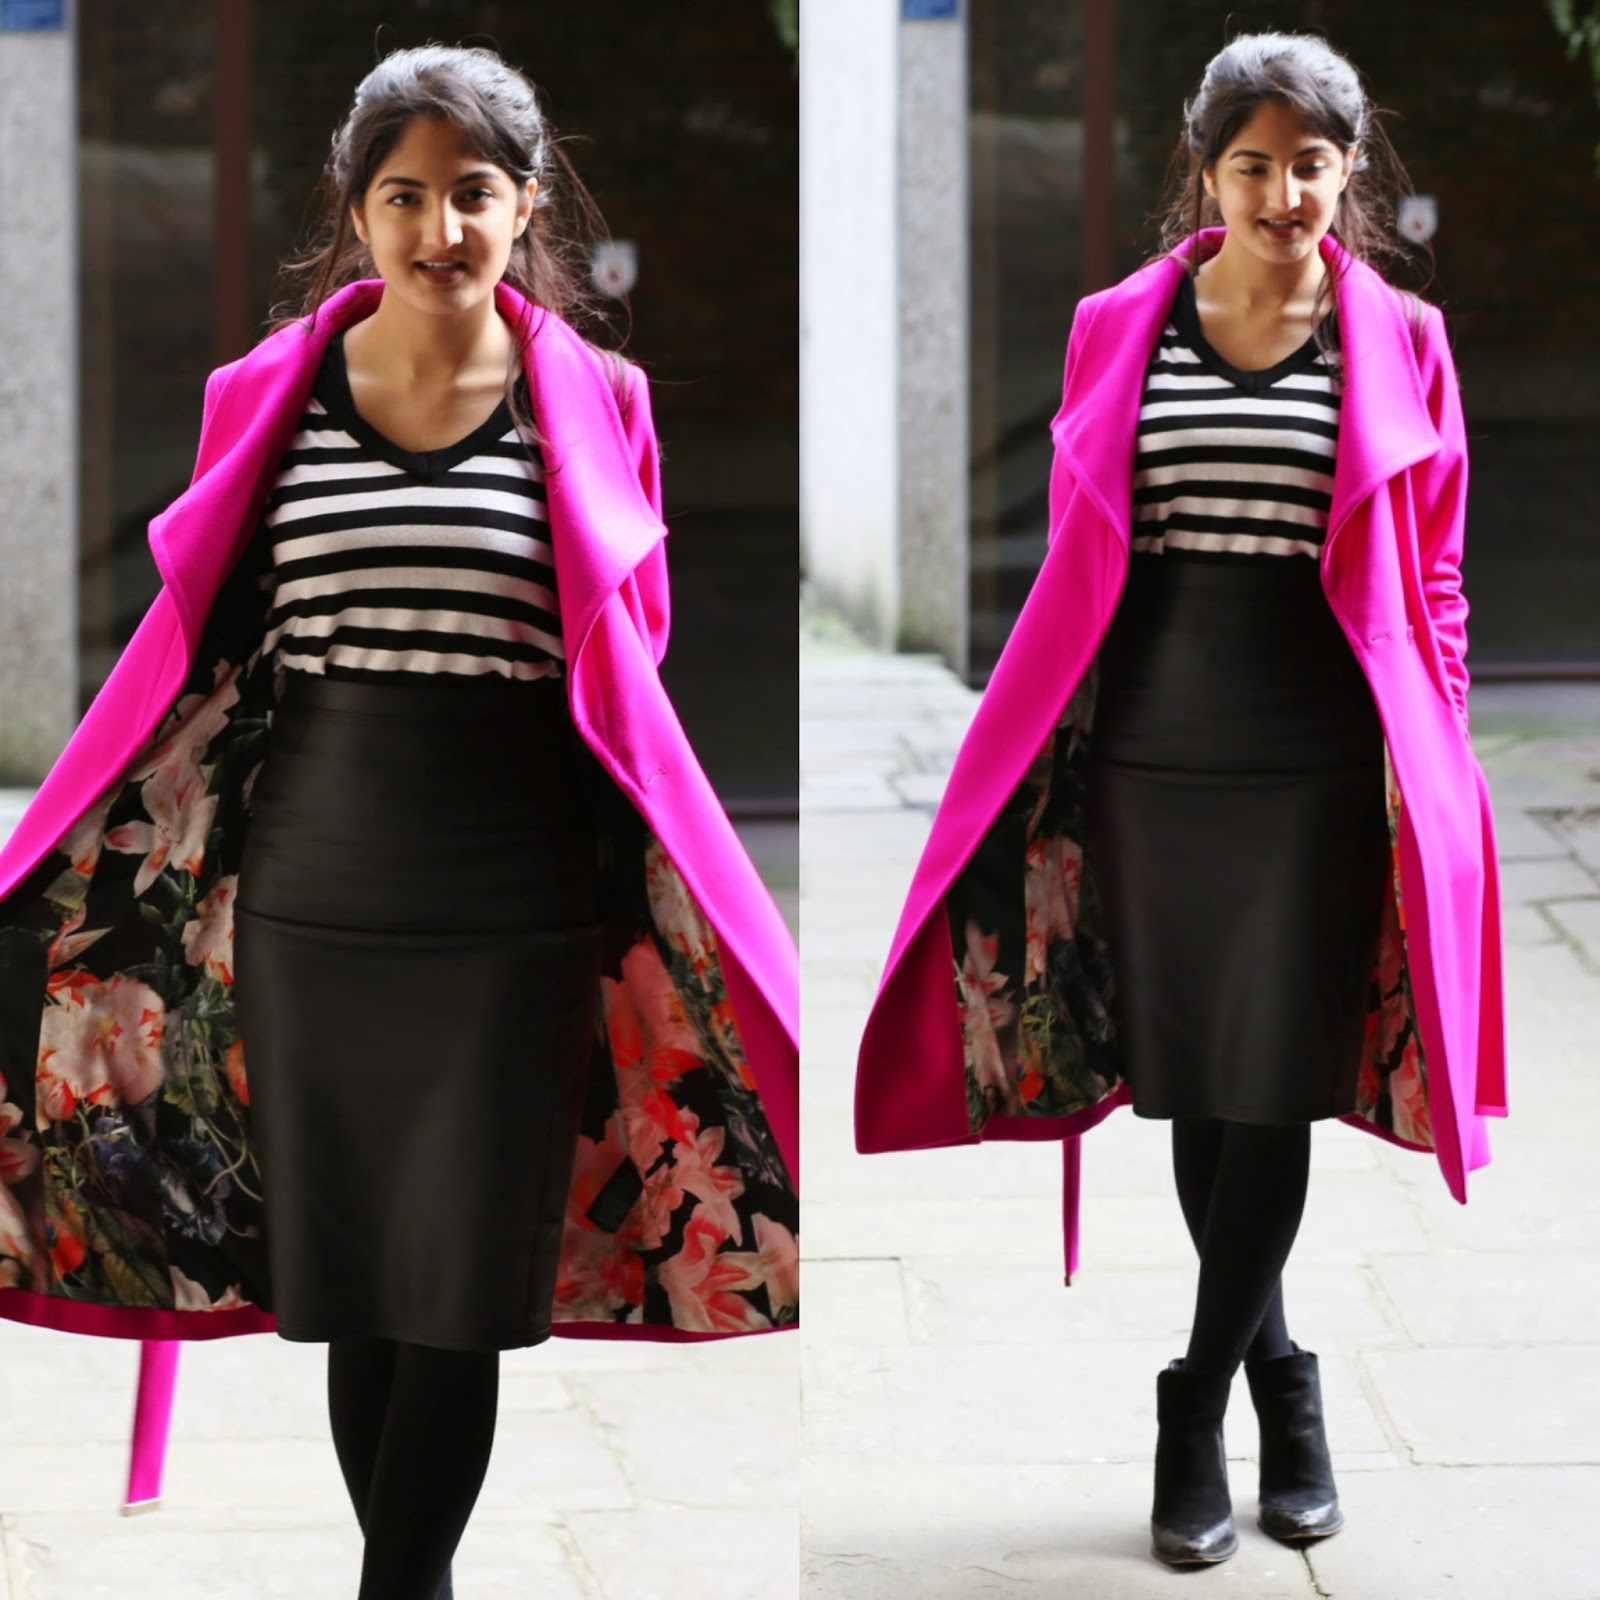 Work Outfit: Ted Baker Nevia belted wrap coat in deep pink, Leather pencil skirt, Monochrome Striped V Neck Jumper